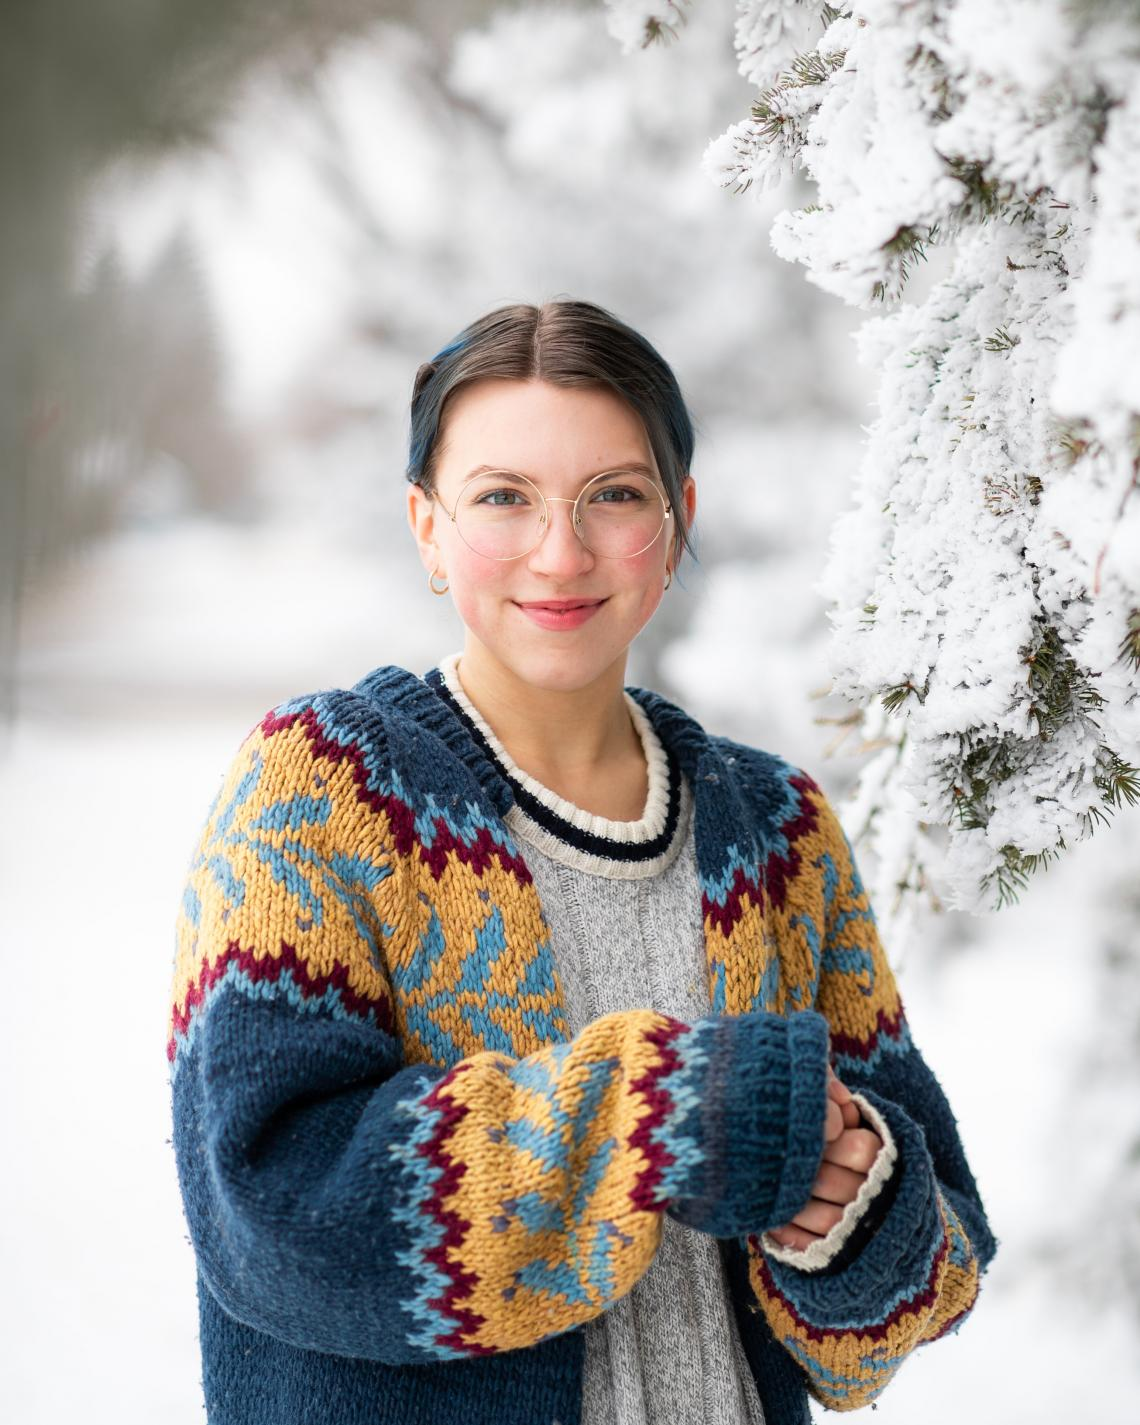 sweater in the snow